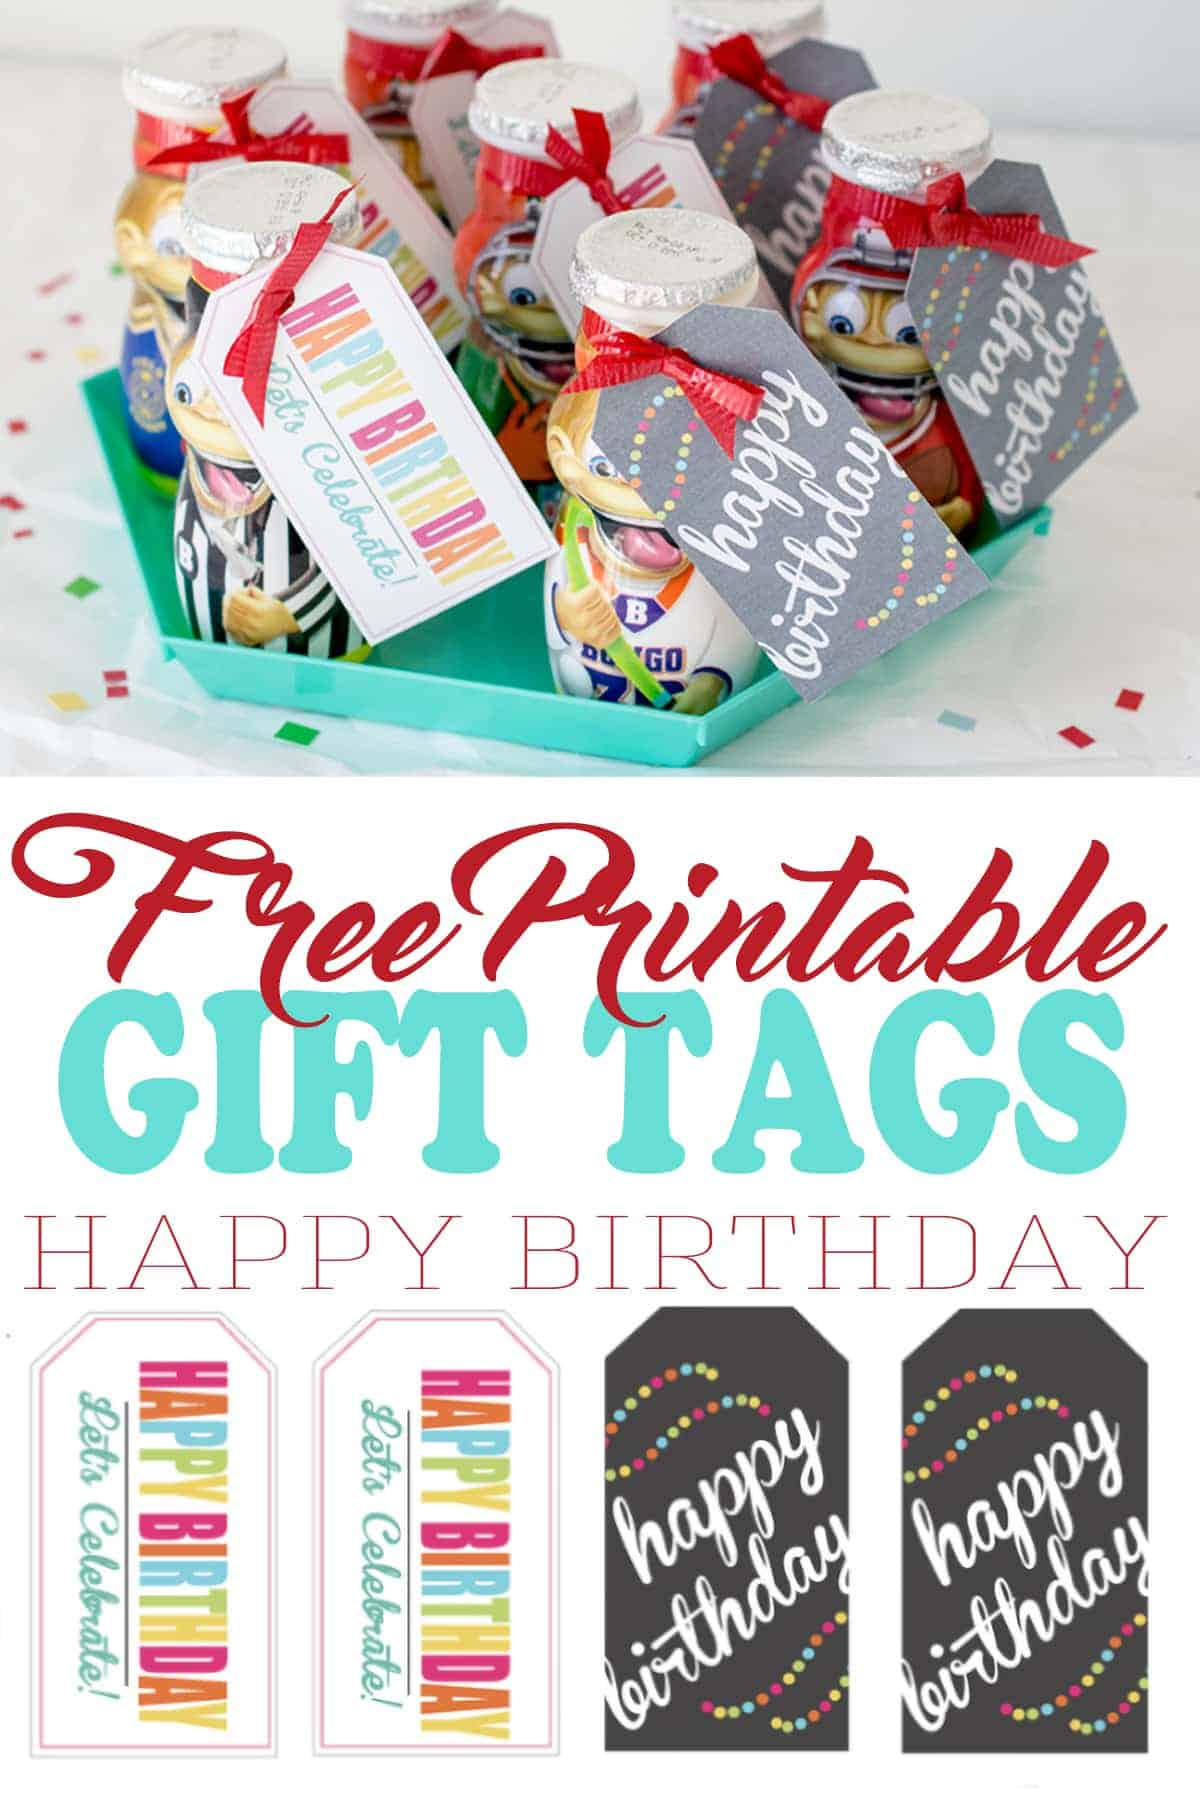 Printable birthday gift tags